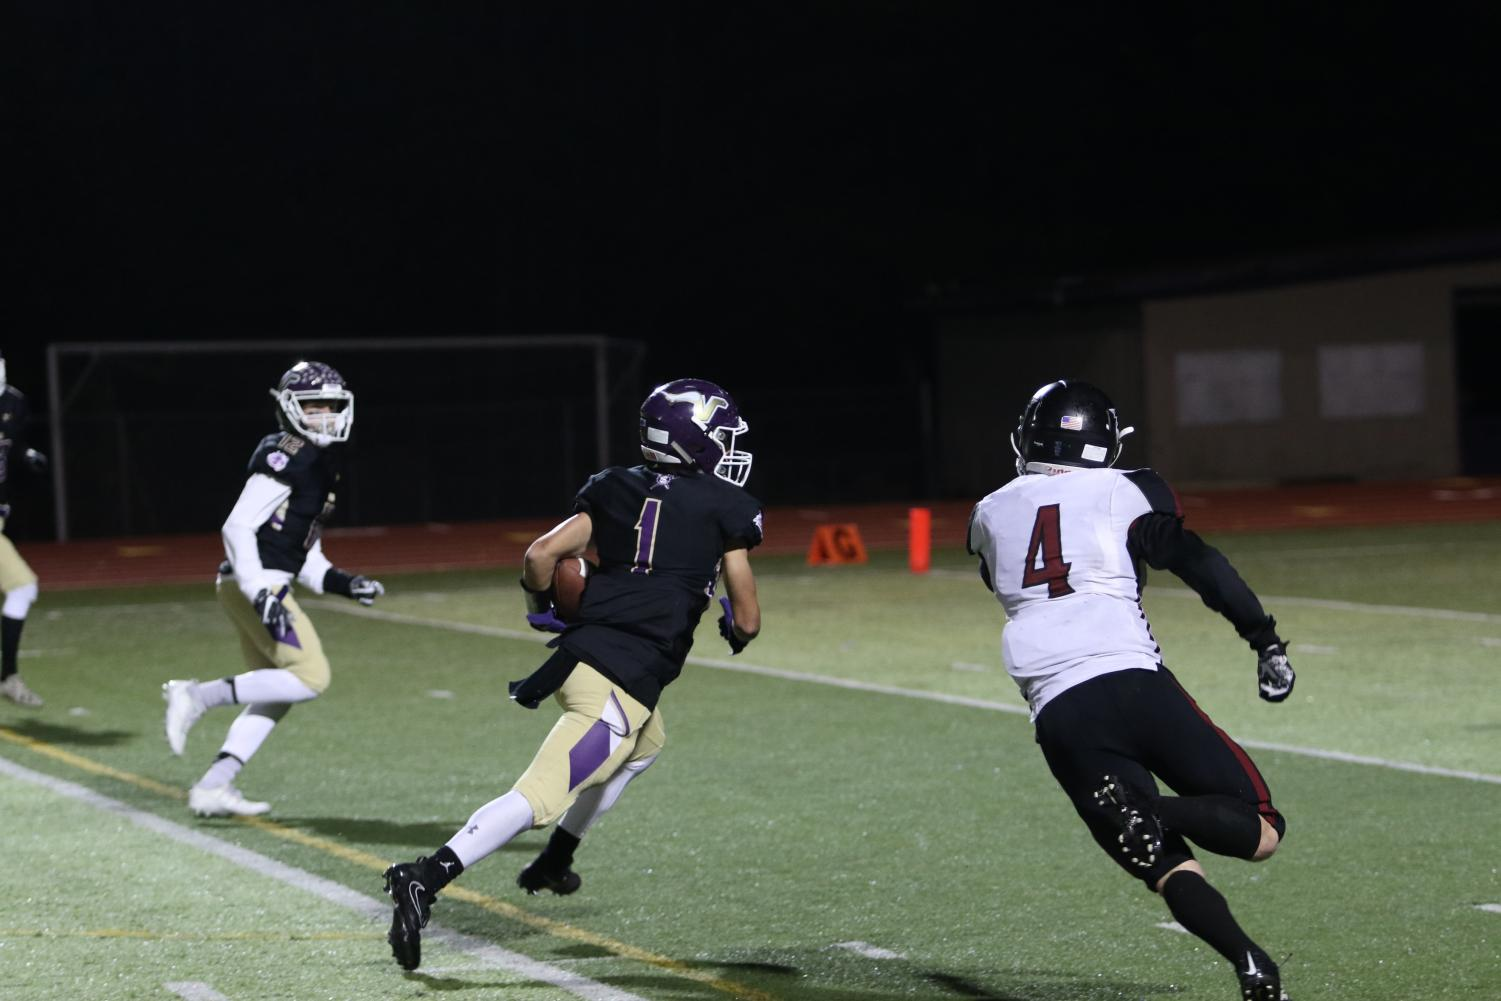 Junior Ian Hanson guns it for the end zone after making a catch in the first quarter. Lake Stevens won 51-0. The Vikings will play the Graham-Kapowsin Eagles next week at Lake Stevens High School.